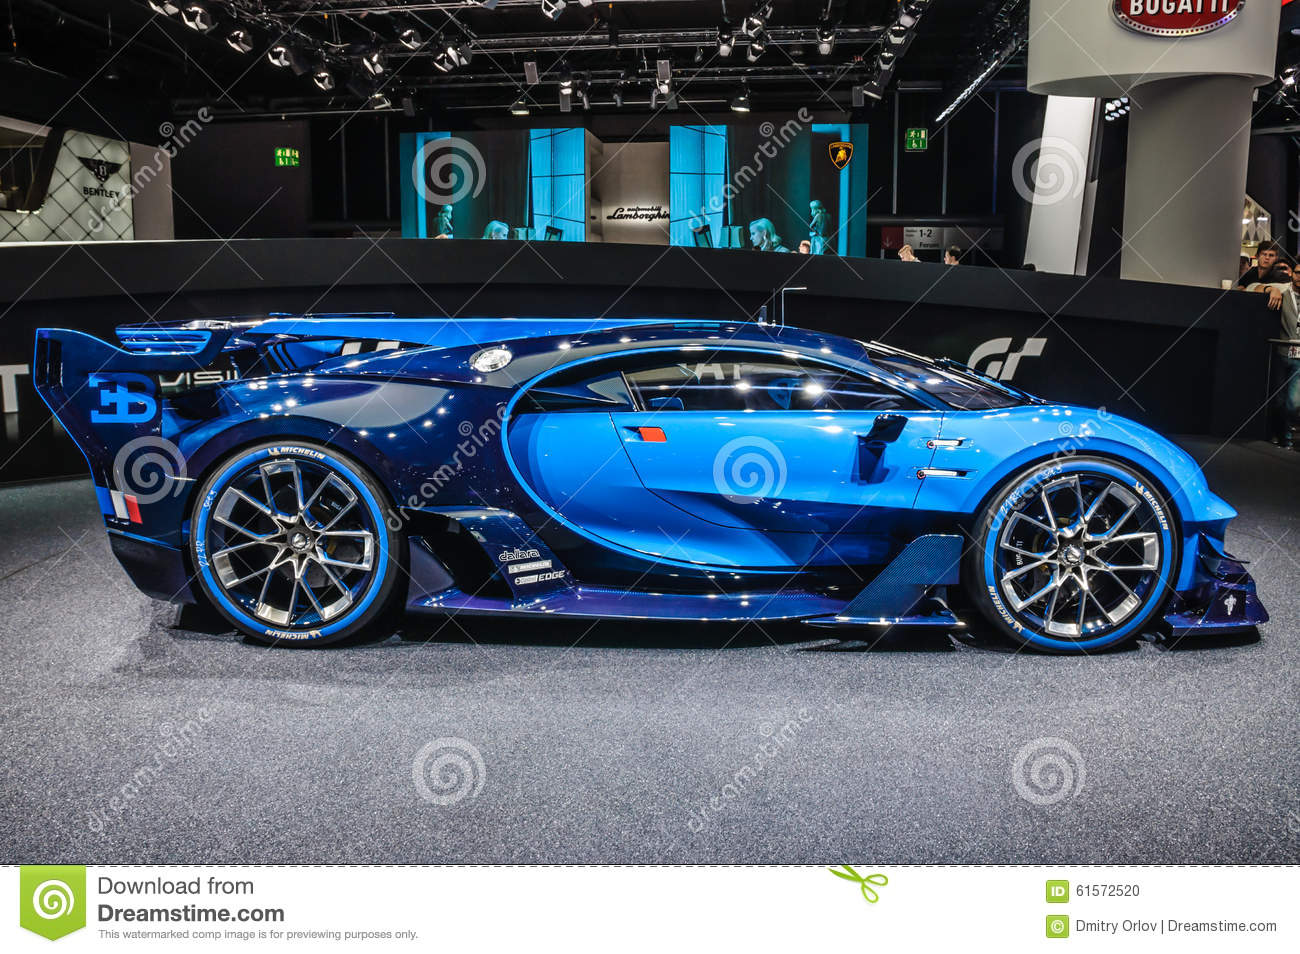 francfort septembre 2015 mamie turismo de vision de bugatti chiron a pr sent au moteur d. Black Bedroom Furniture Sets. Home Design Ideas